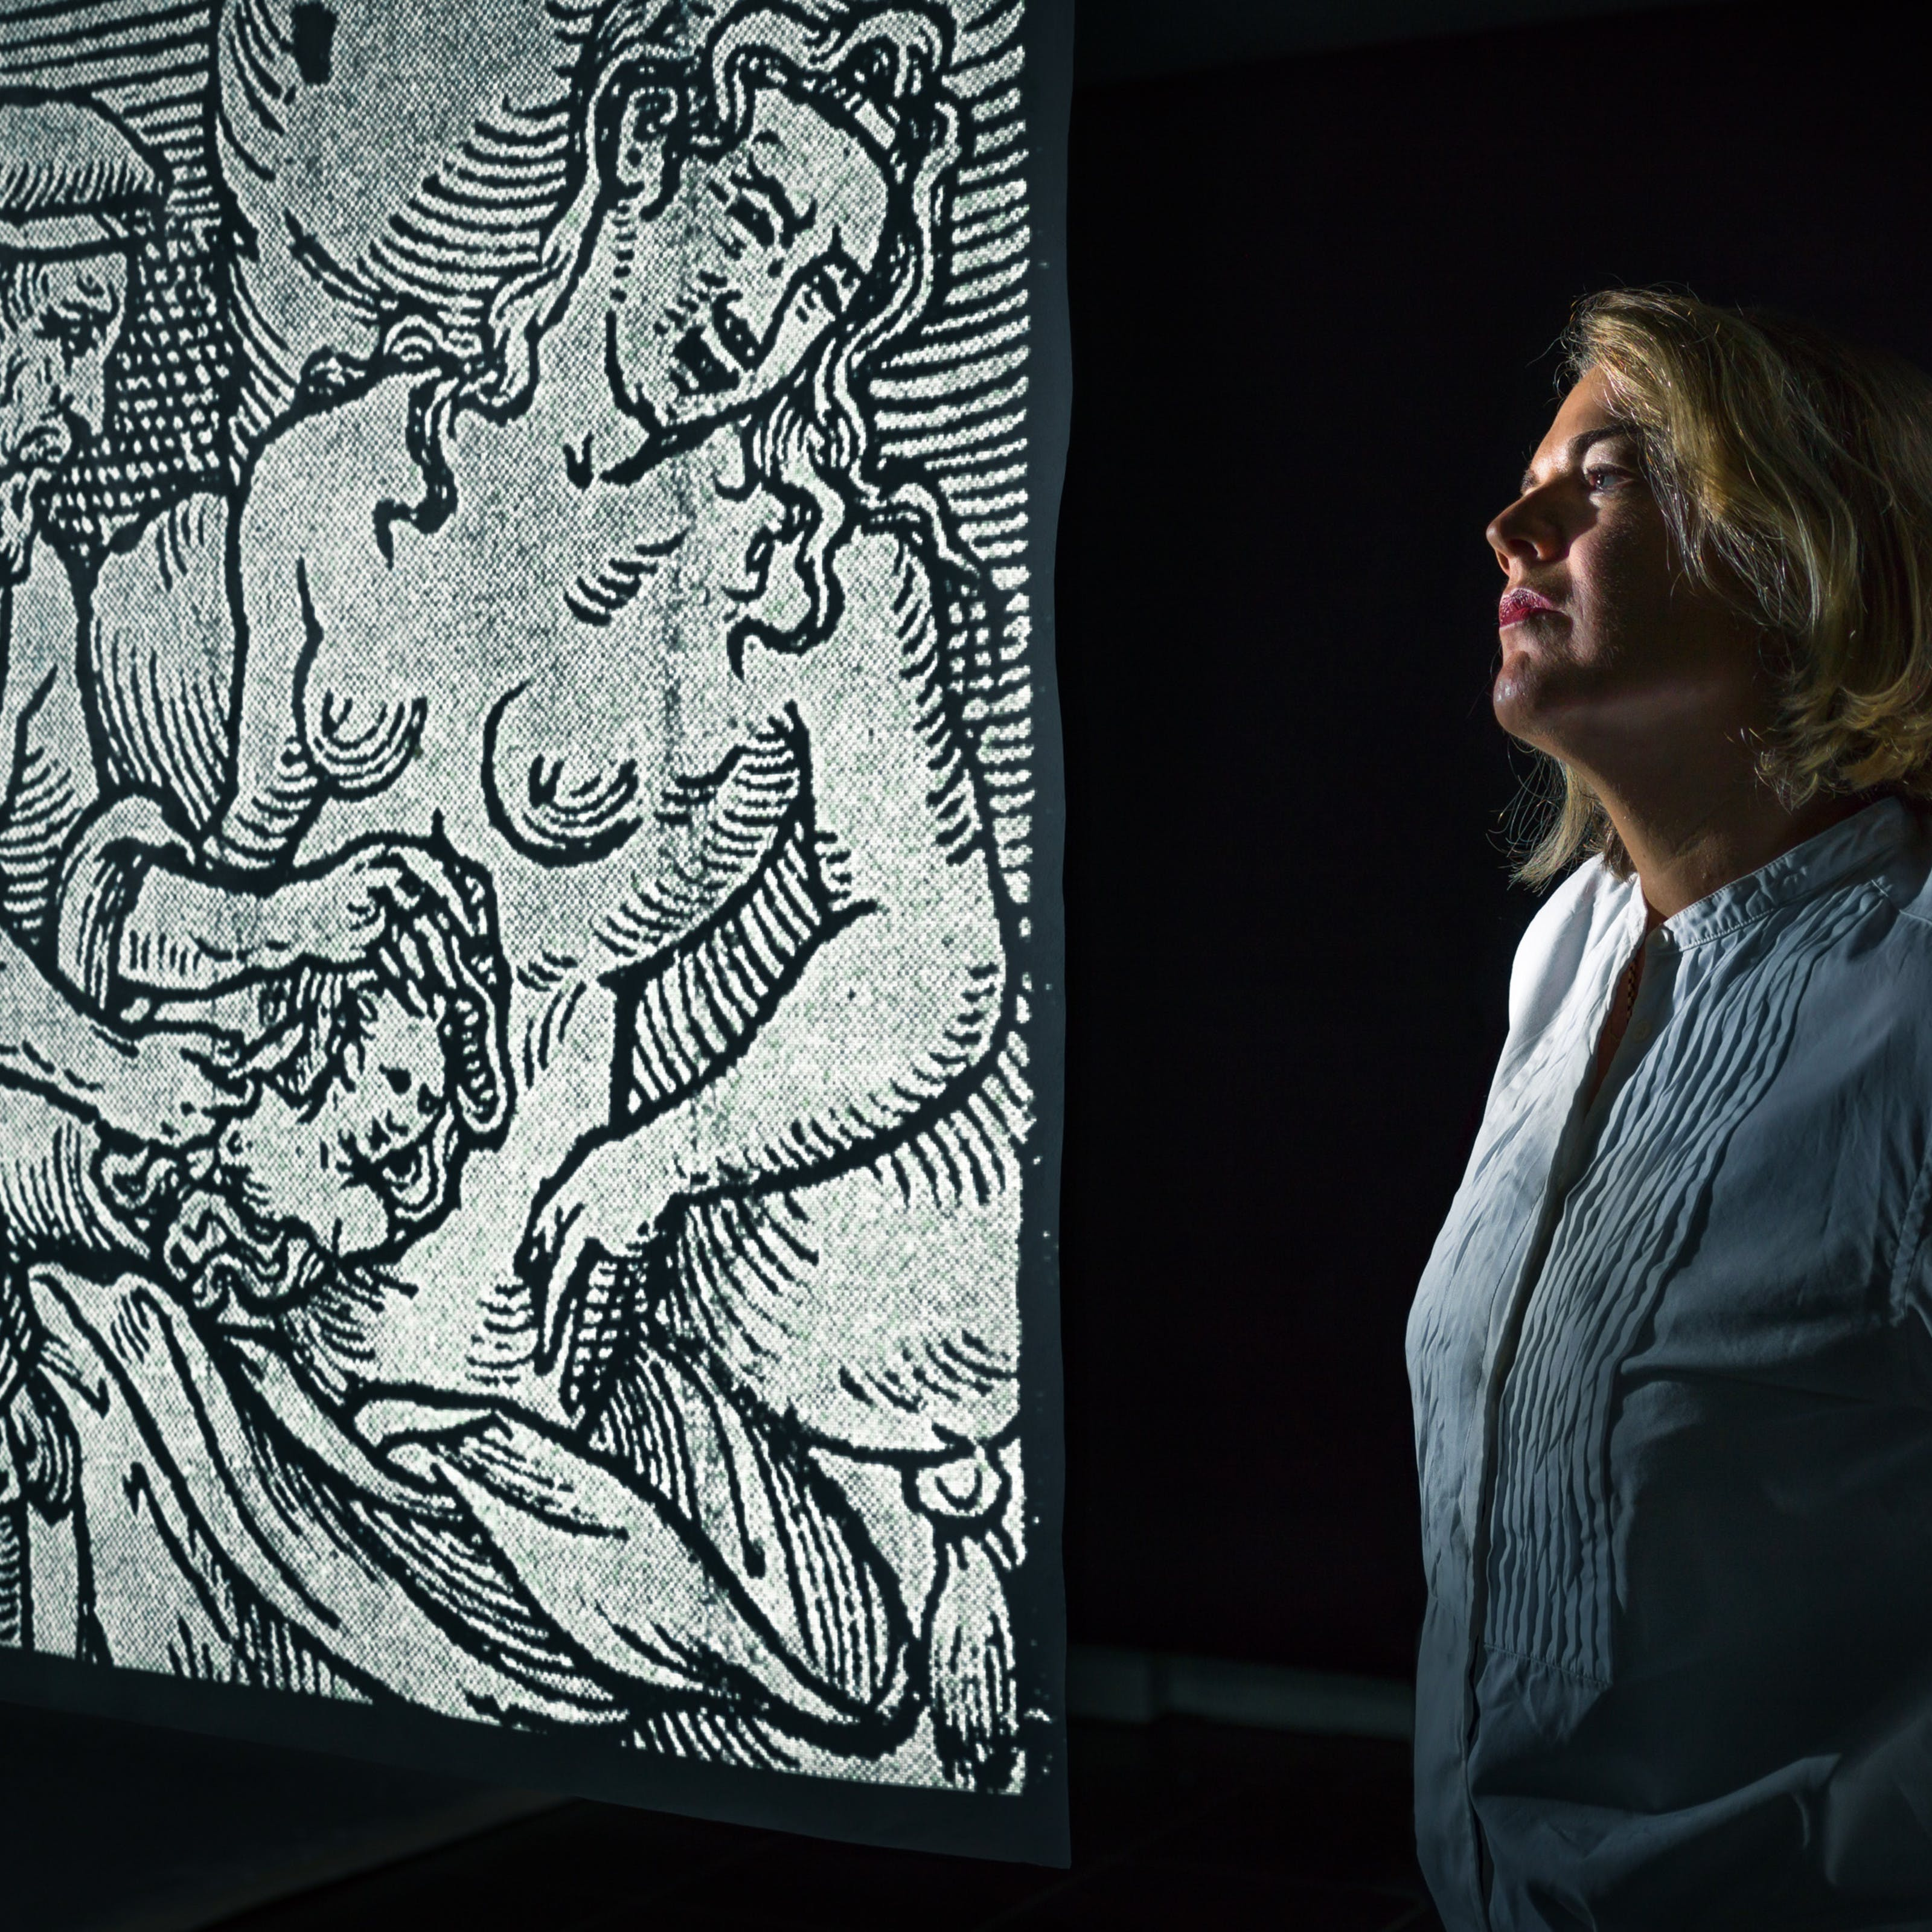 Photograph of Anna Blundy stood by a projected image of an engraving.